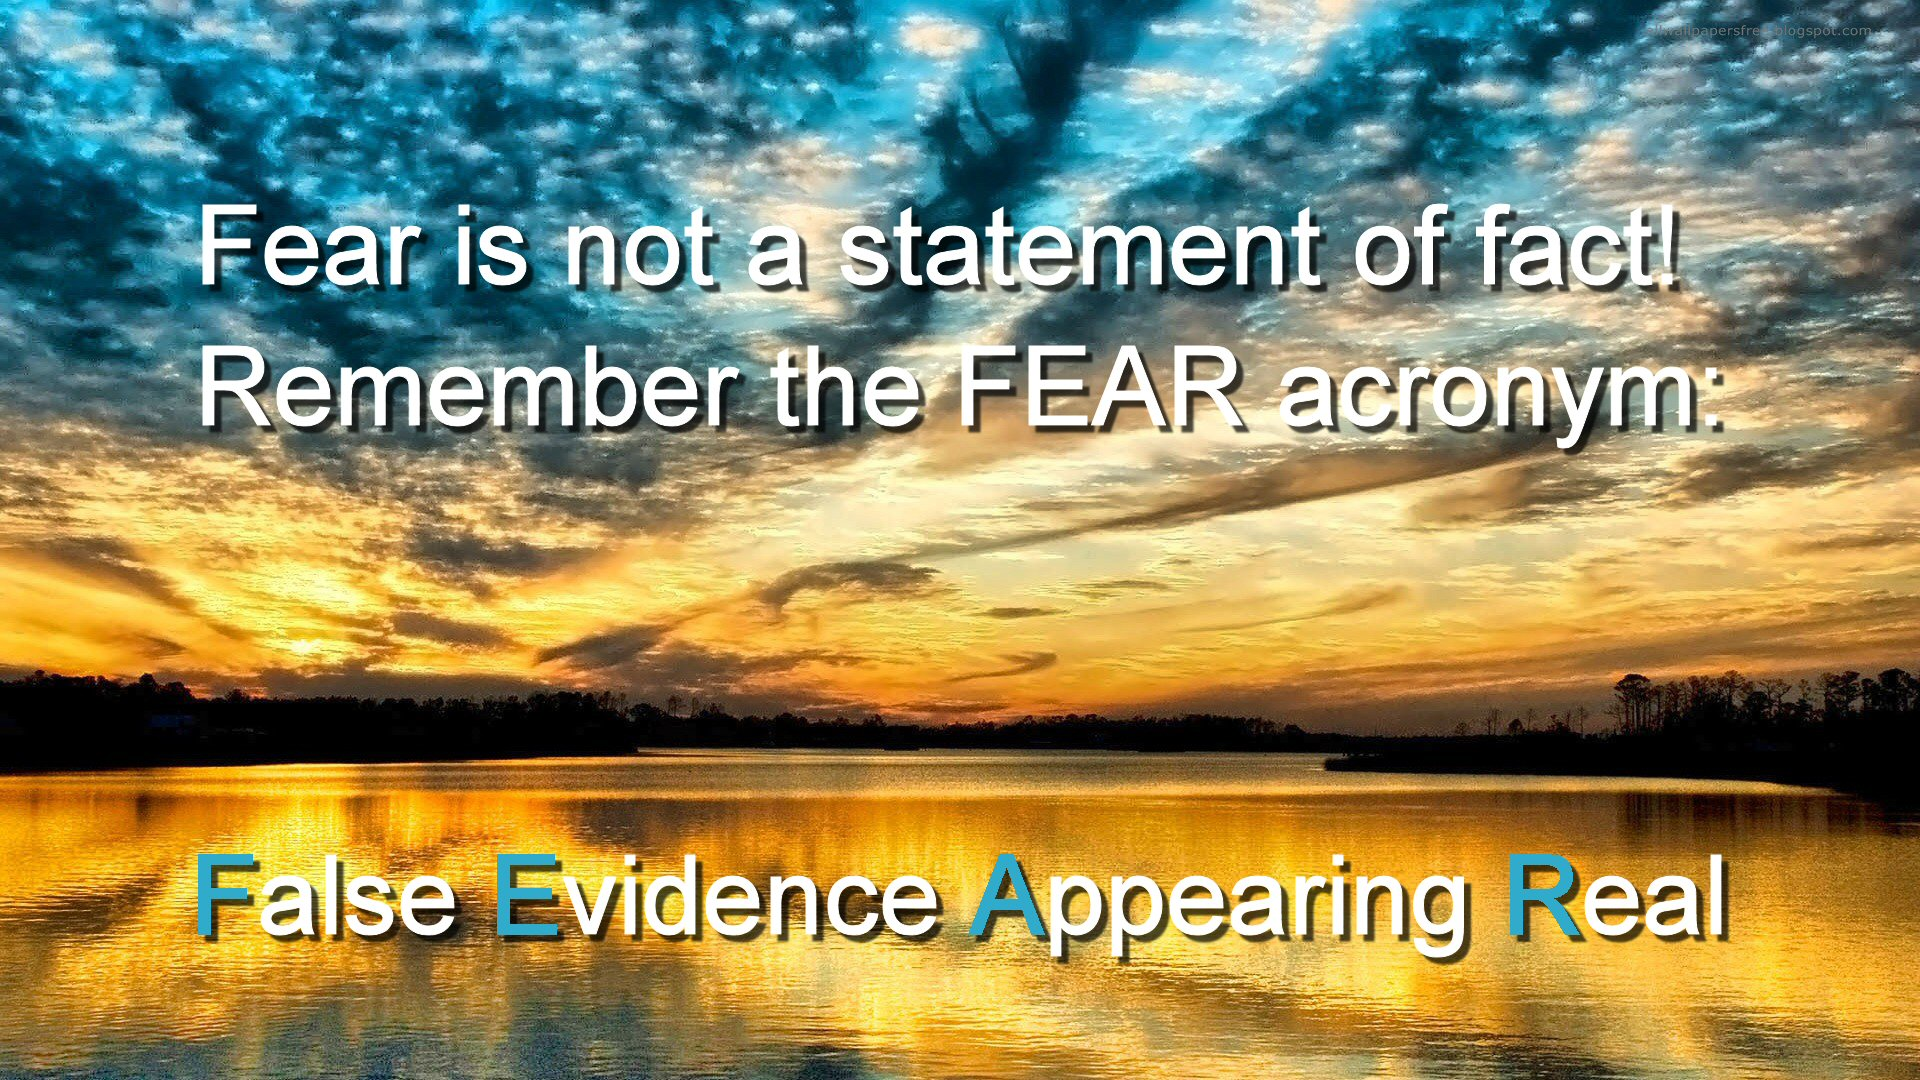 "Blue sky and sunlight are seen through bubbling lines of cloud about a sunlit horizon, reflecting yellow-gold and flecked with blue in the water below. Text set against the sky and water reads: ""Fear is not a statement of fact - Remember the FEAR acronym: False Evidence Appearing Real""."